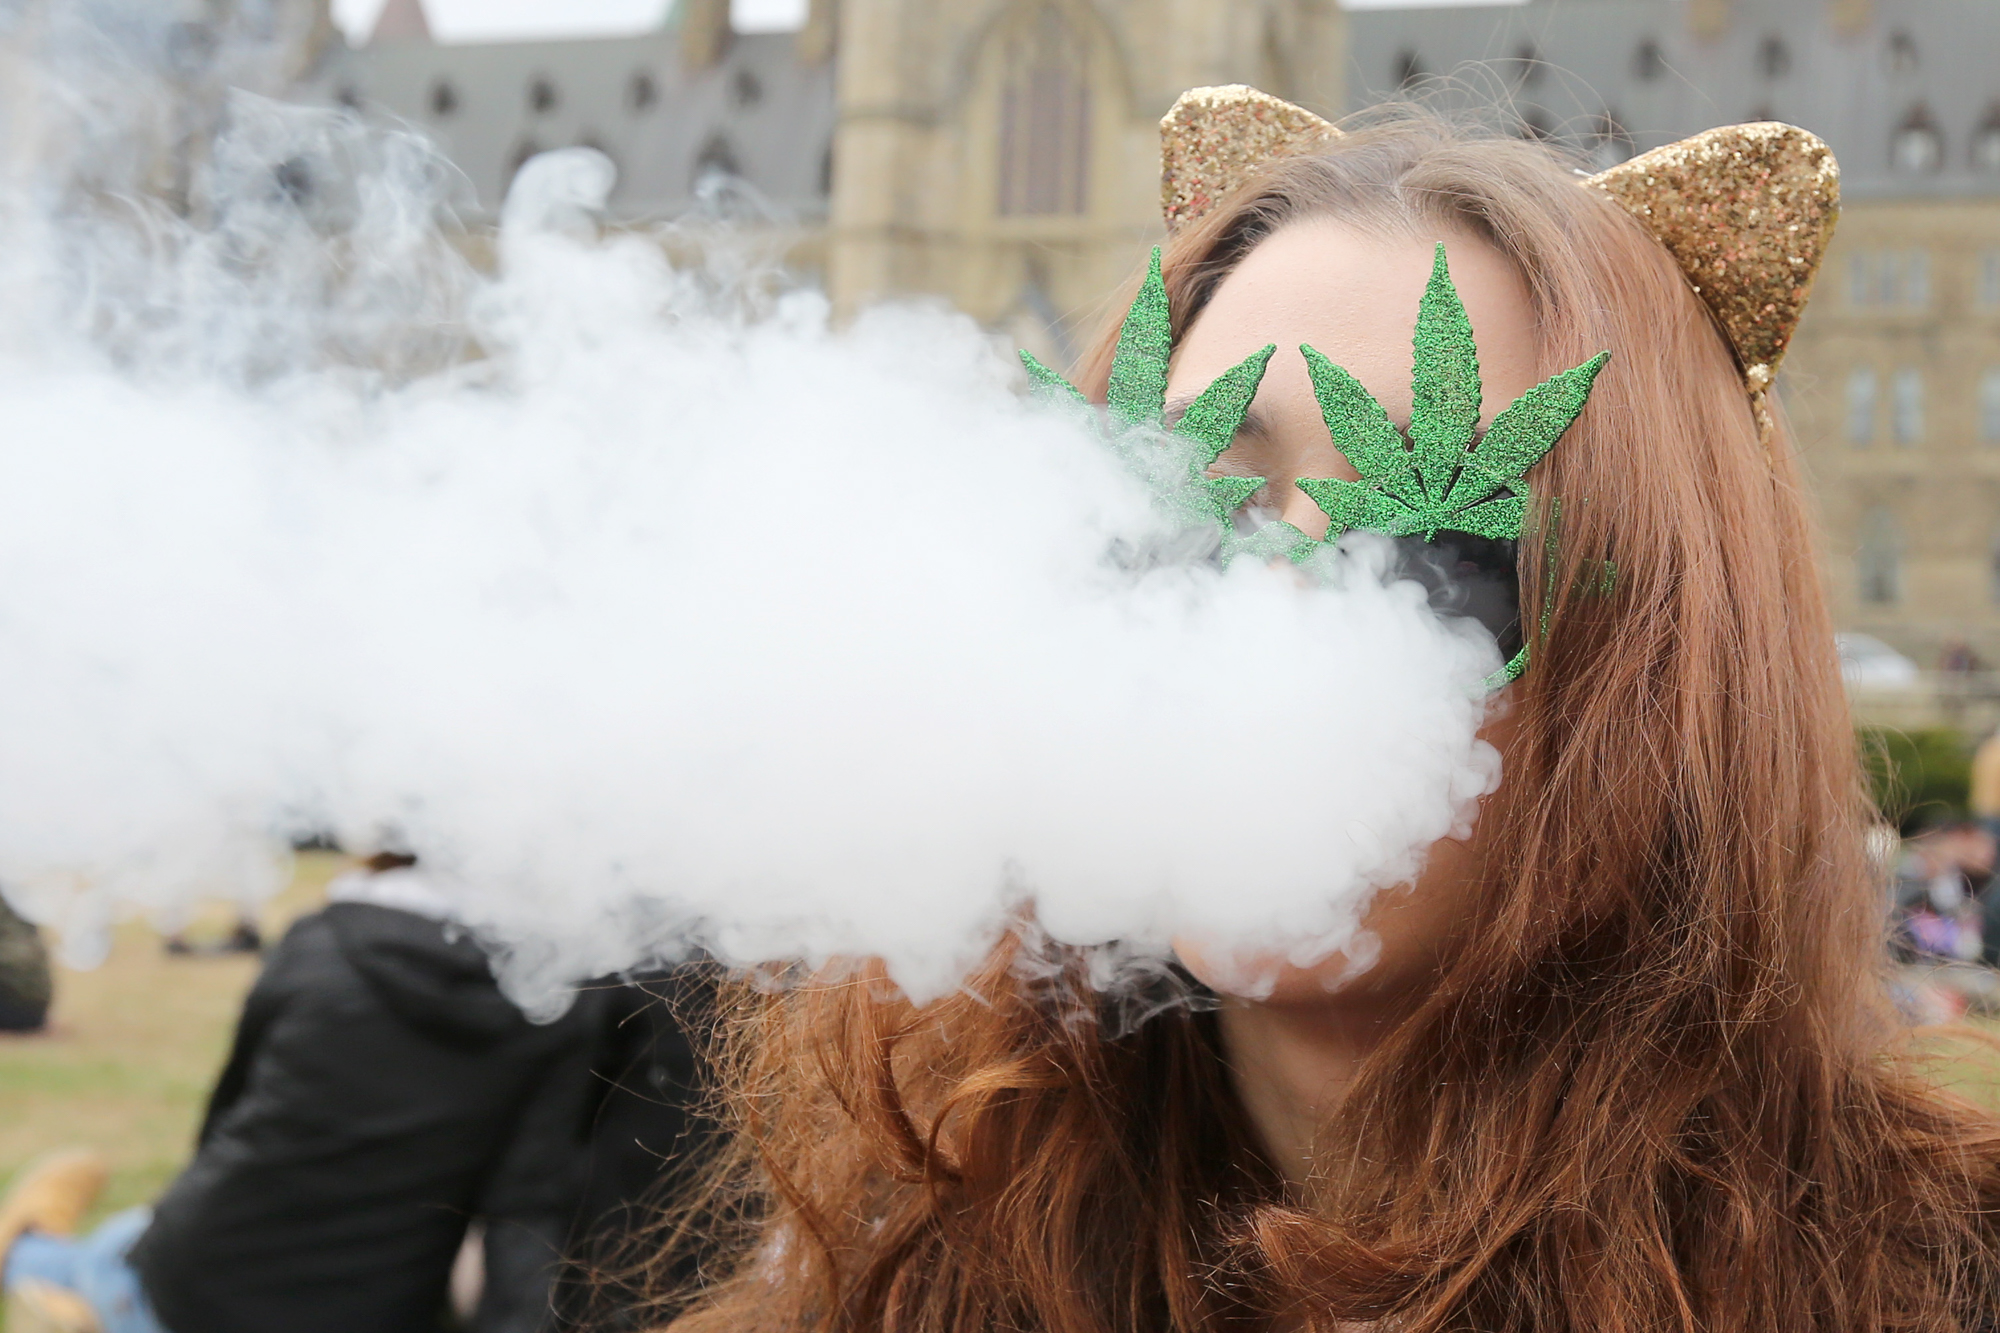 how to grow weed legally in canada